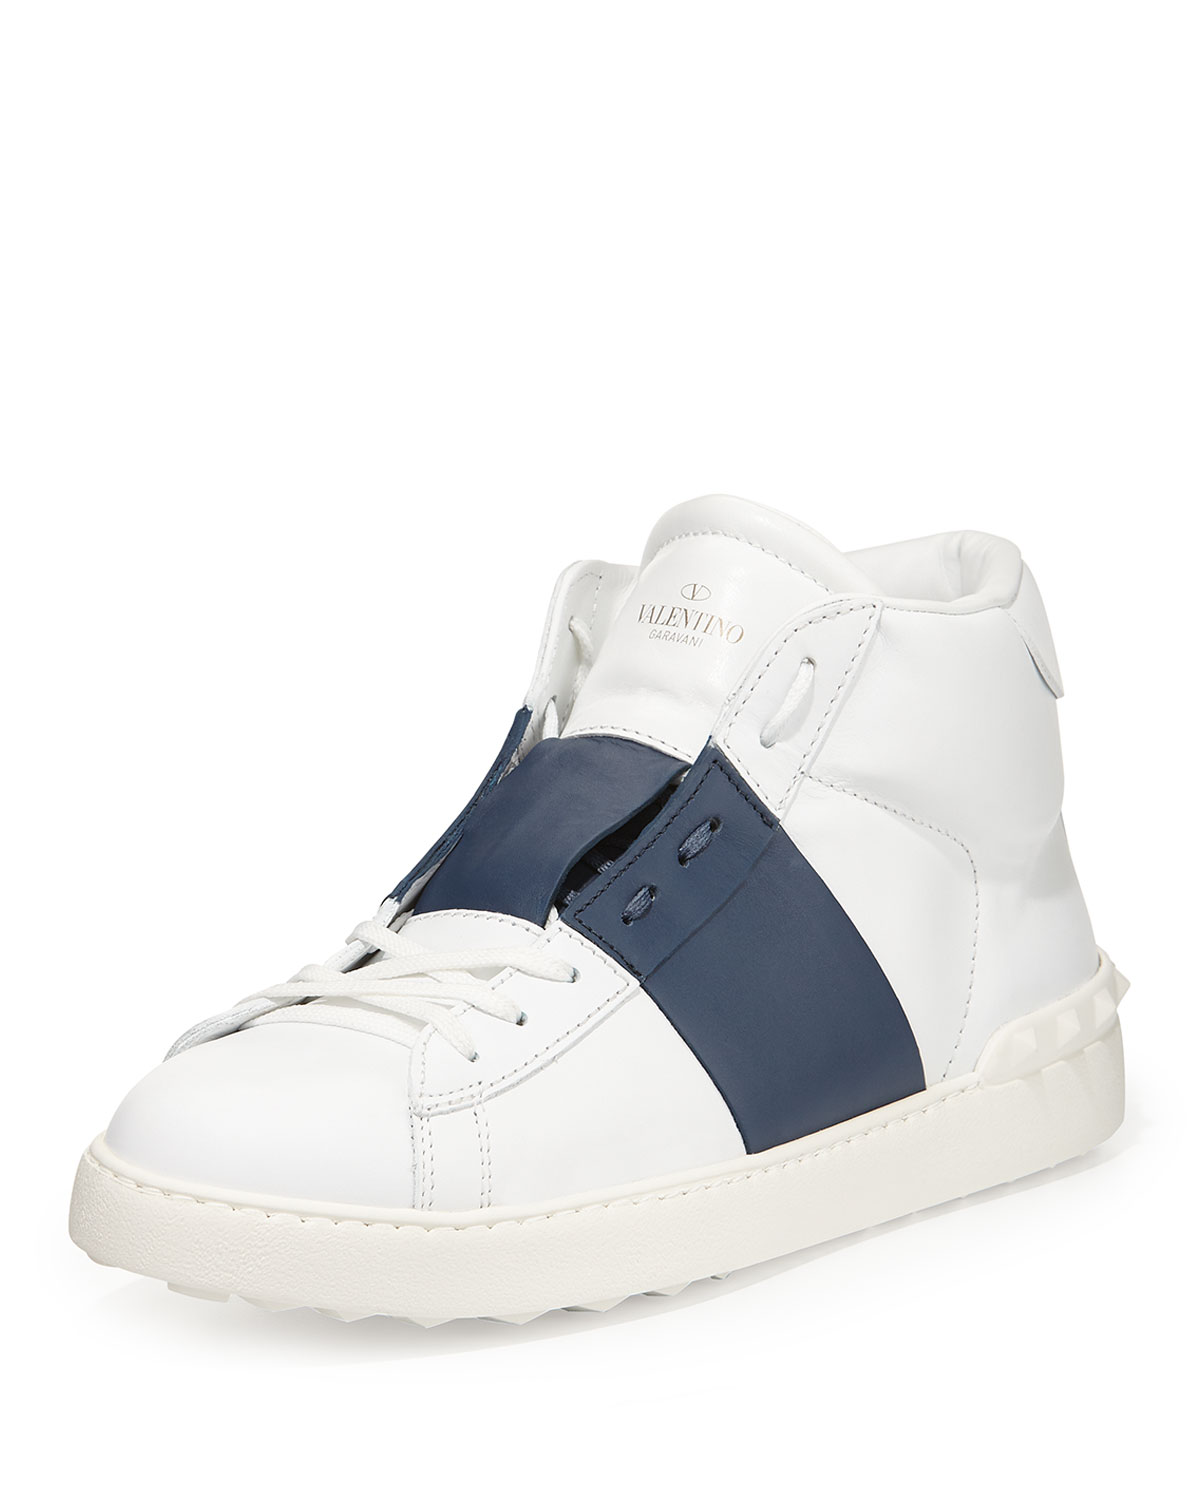 Rockstud Leather High-Top Sneaker, White/Blue, Size: 40.5/7.5D - Valentino